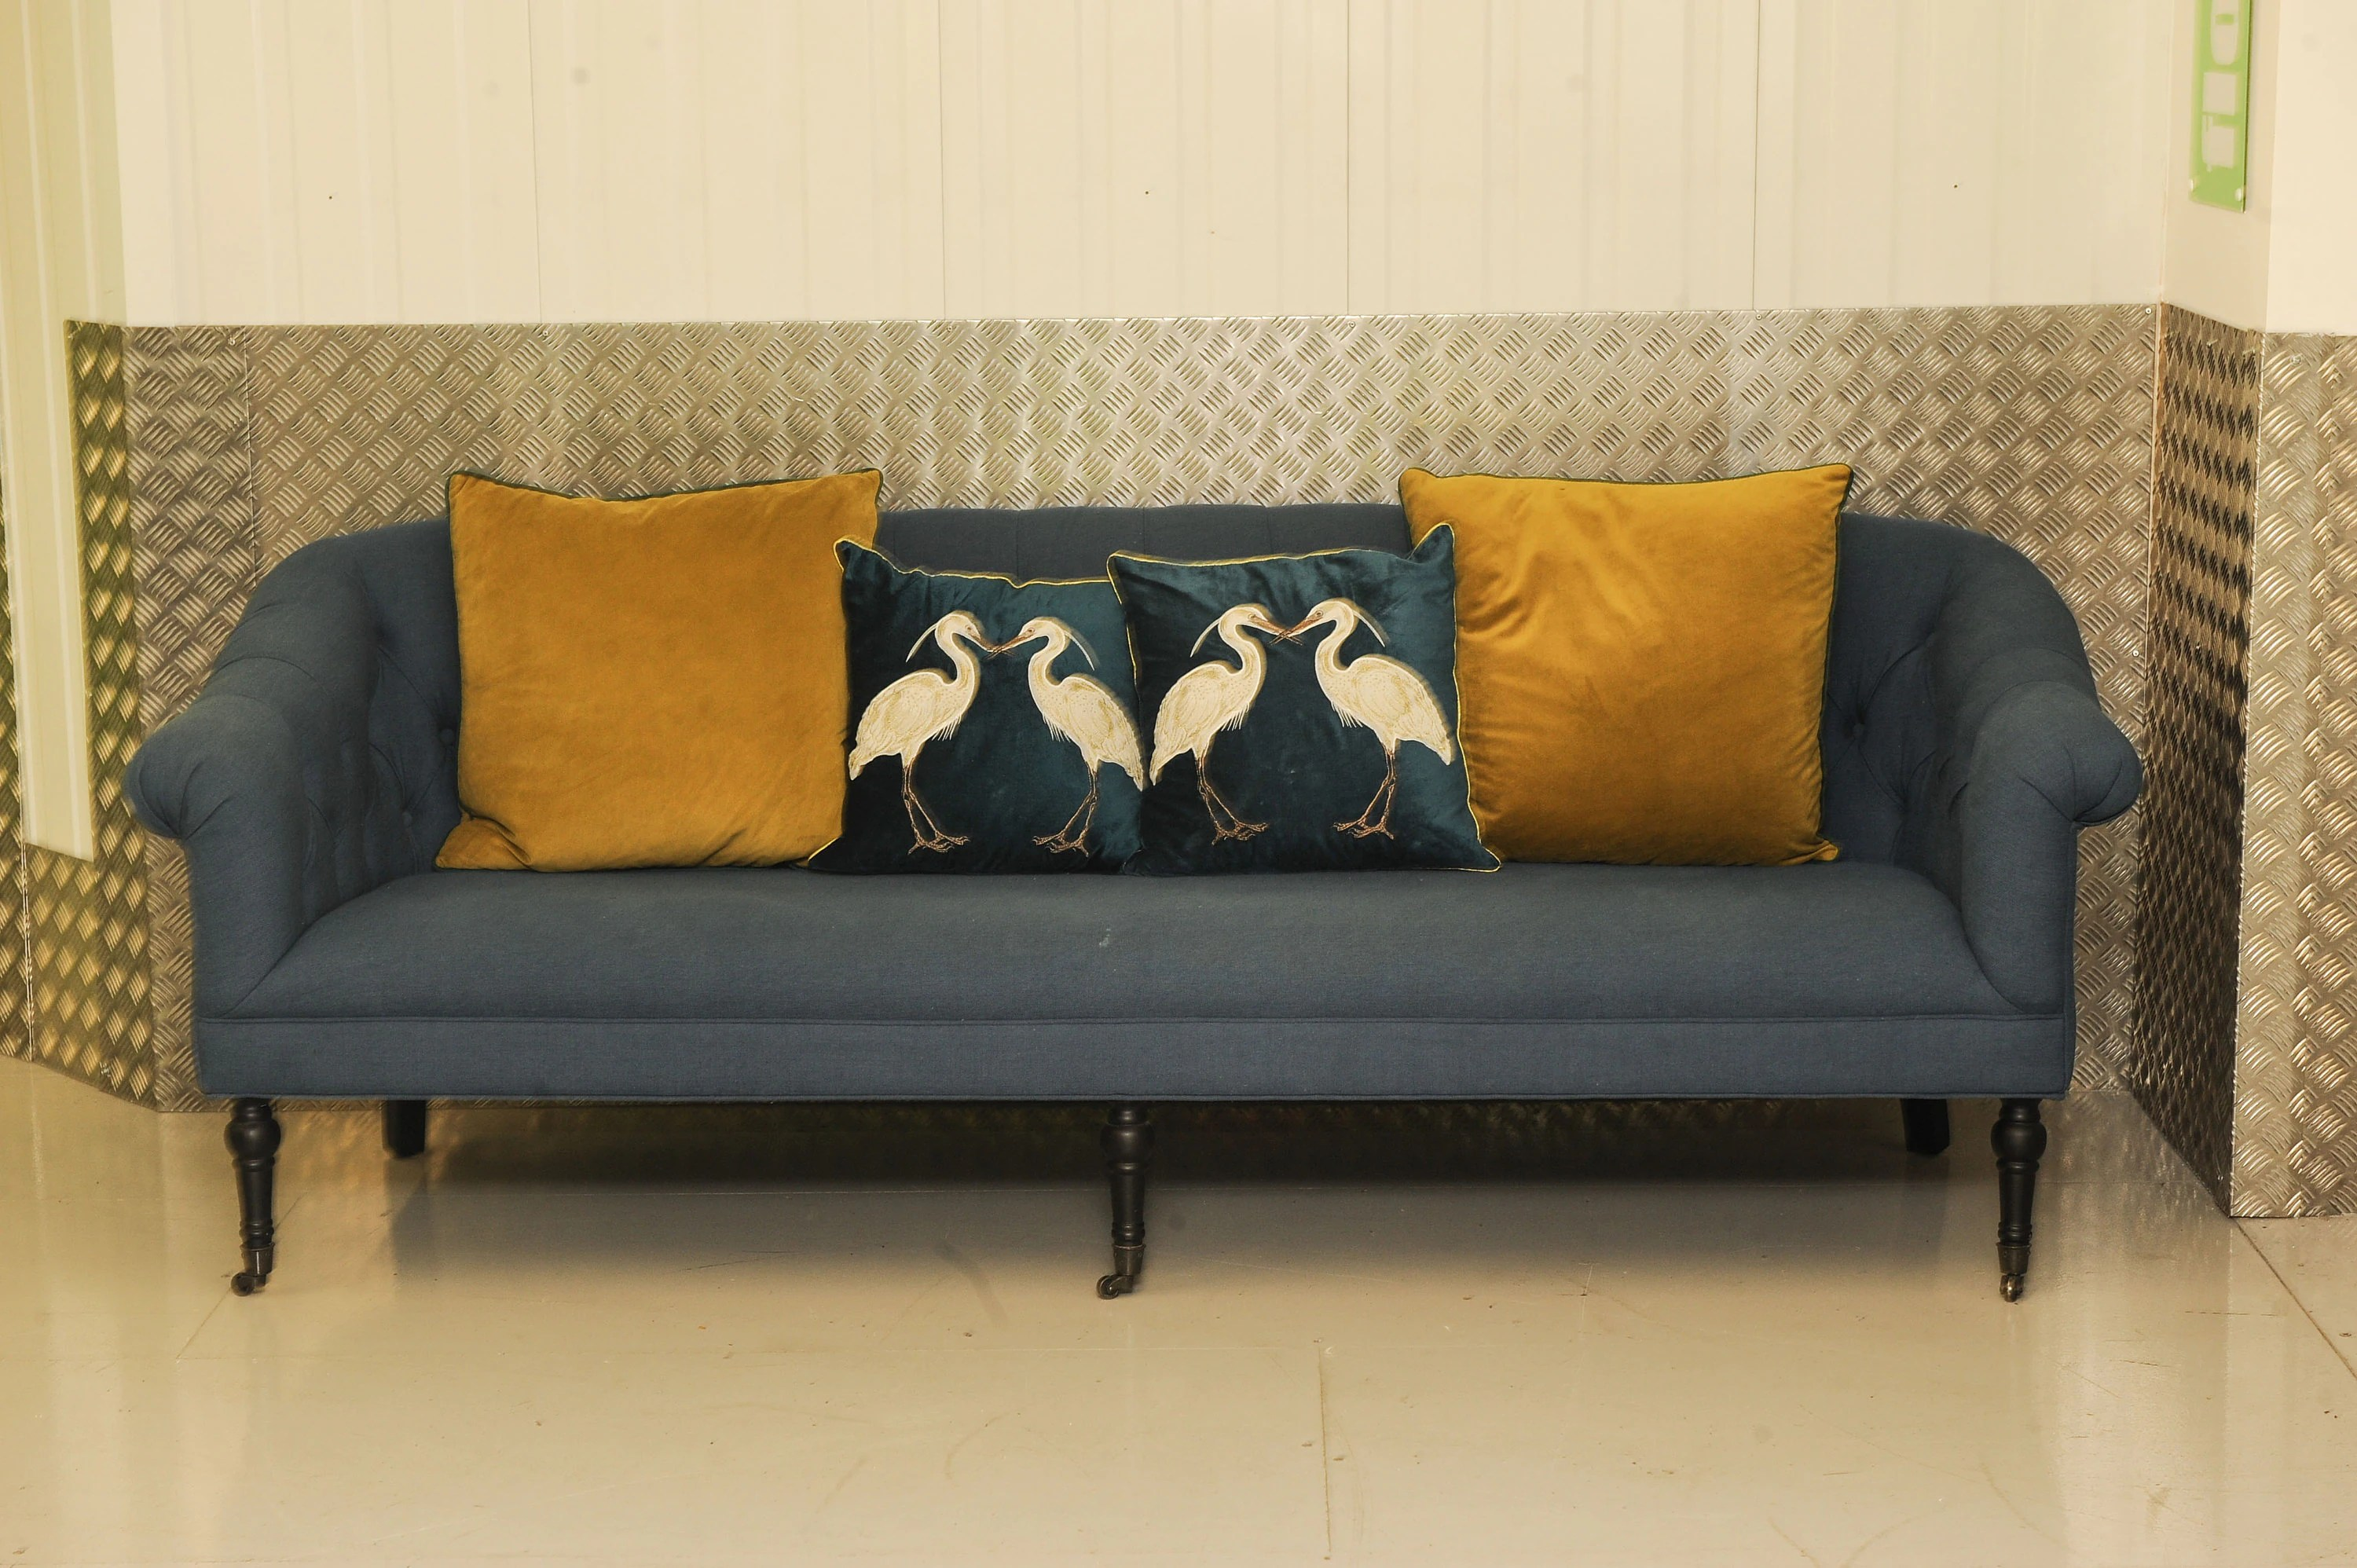 Sofa In Chesterfield Look Eichholtz Designer Deep Button Blue Upholstered Chesterfield Sofa In The Regency Style Raised On Ebonised Supports Read Shipping Info